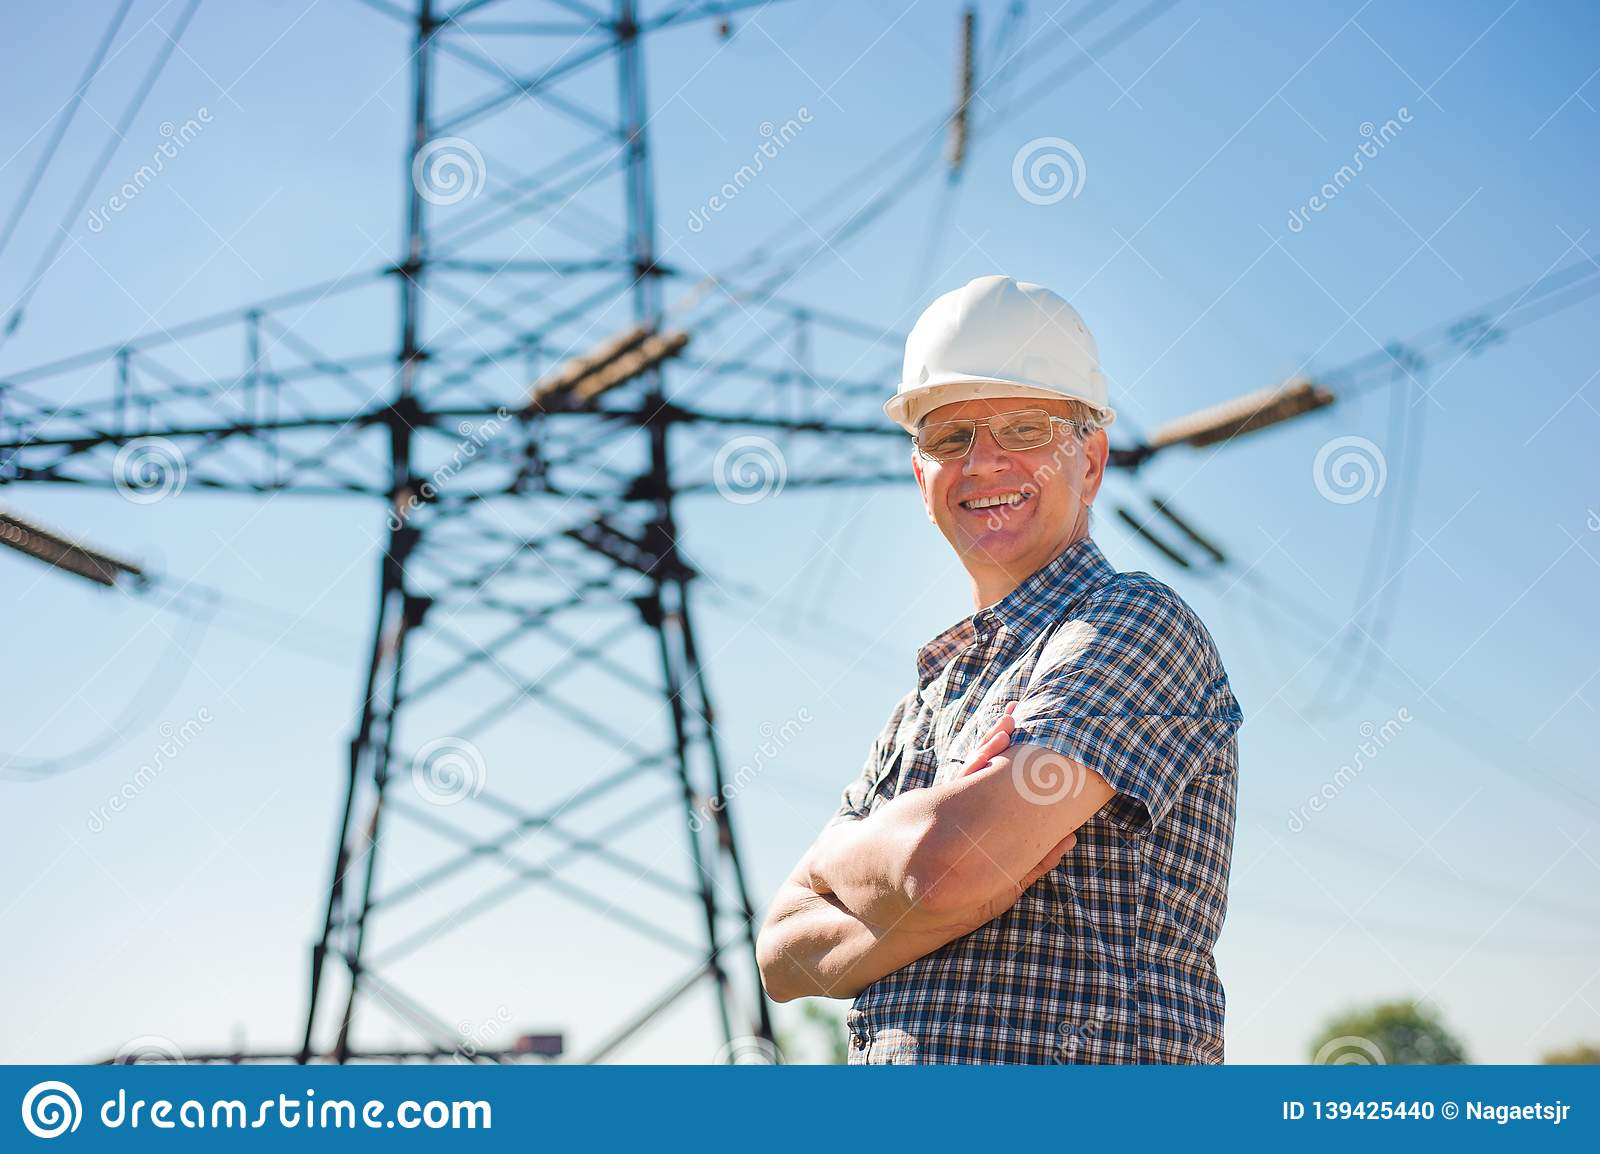 Experienced engineer with white hard hat under the power lines.